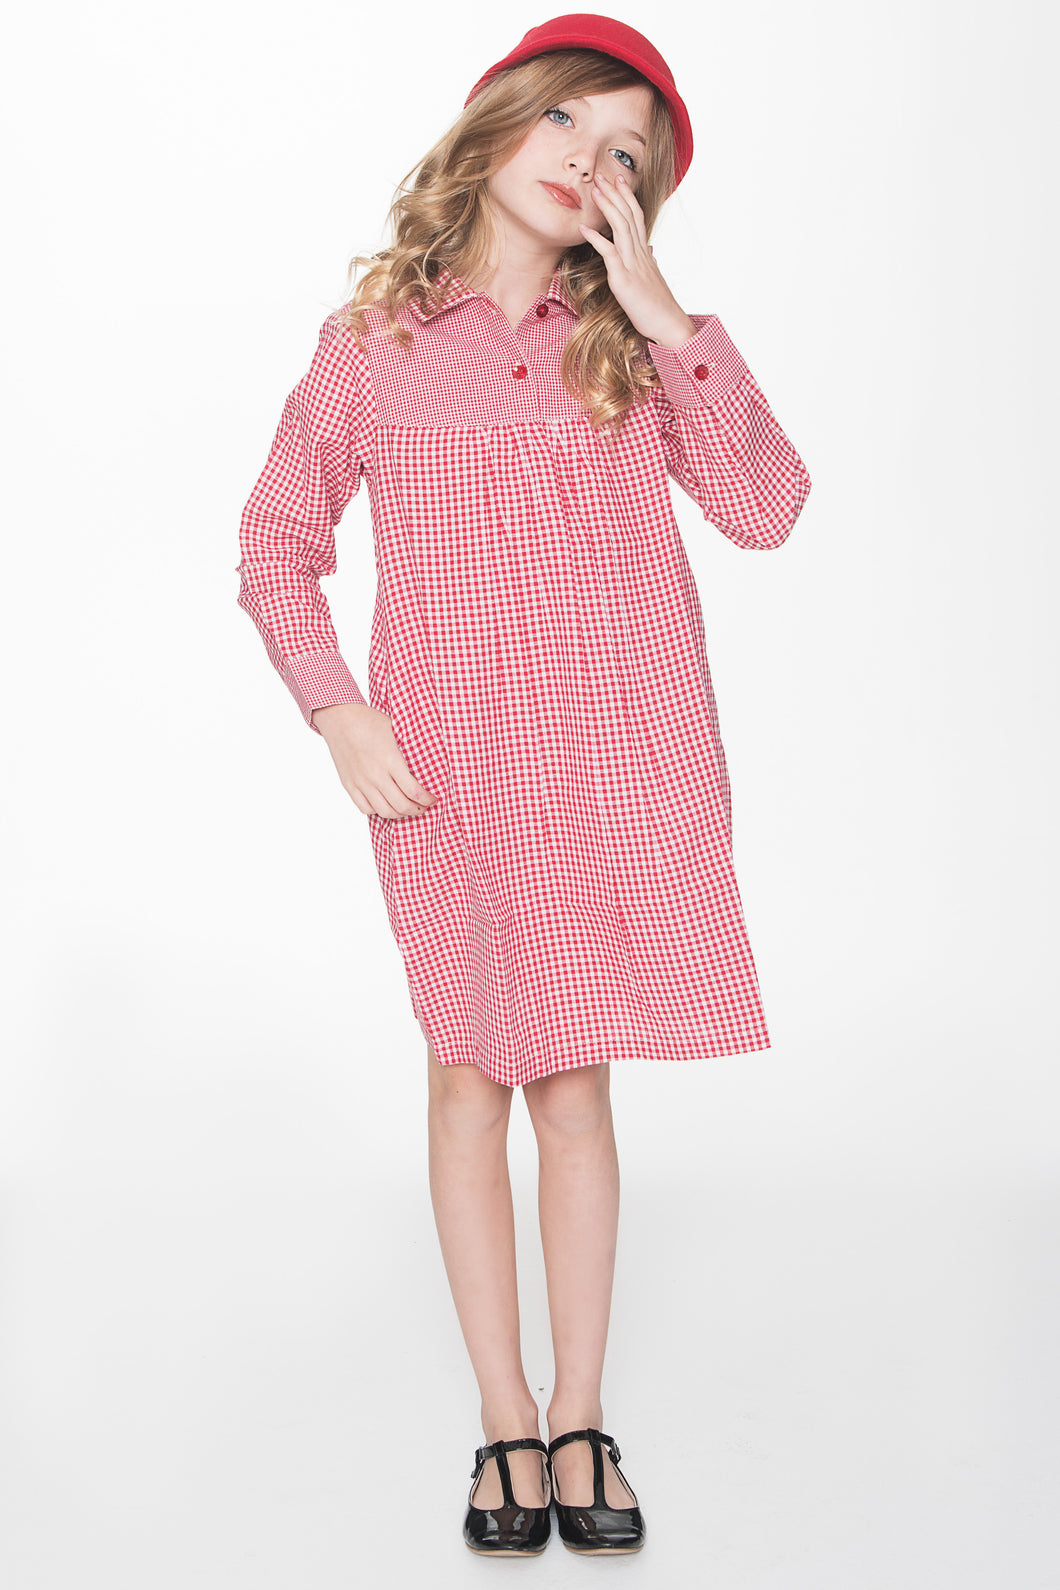 Red Checks Shirt Dress - Kids Wholesale Boutique Clothing, Shirt-Dress - Girls Dresses, Yo Baby Wholesale - Yo Baby